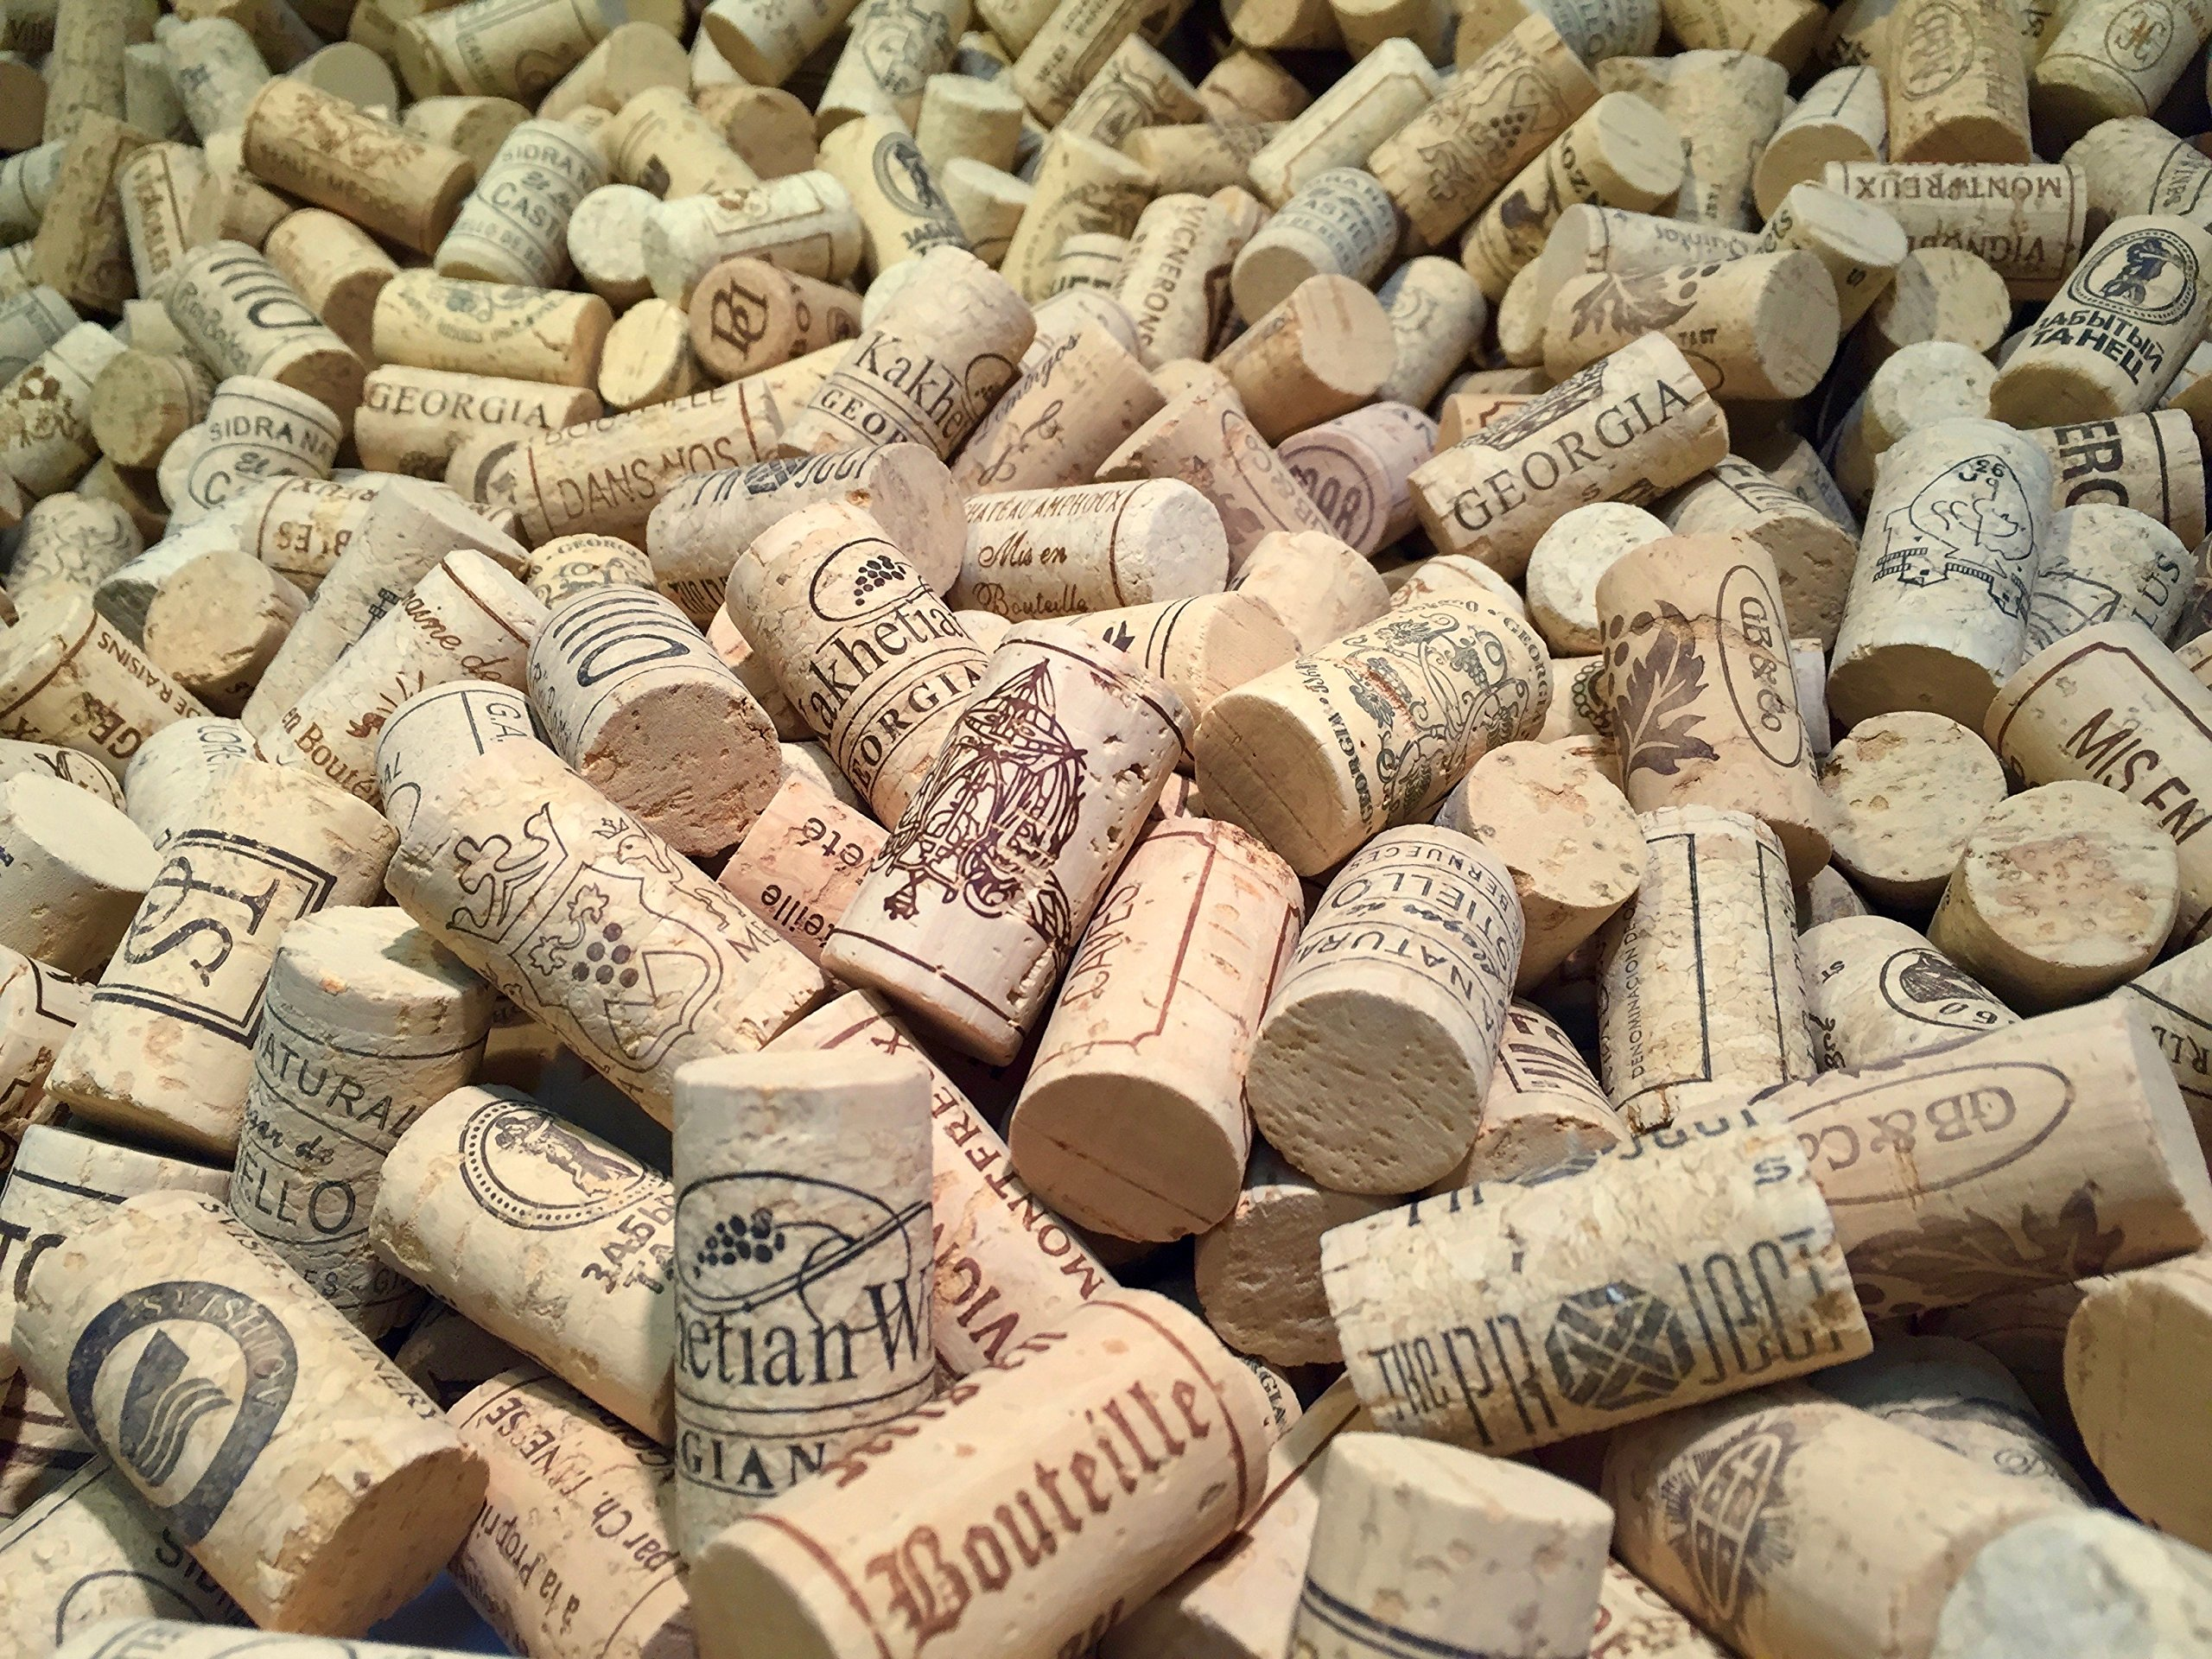 Wine Corks | Brand New, Authentic, All Natural | Printed, Winery-Marked, Craft Grade | Uncirculated, Uniform & Clean | Excellent for Crafting & Decor | Pack of 50/100/150/200 Premium Wine Corks (500) by Corkshire Hathaway (Image #3)